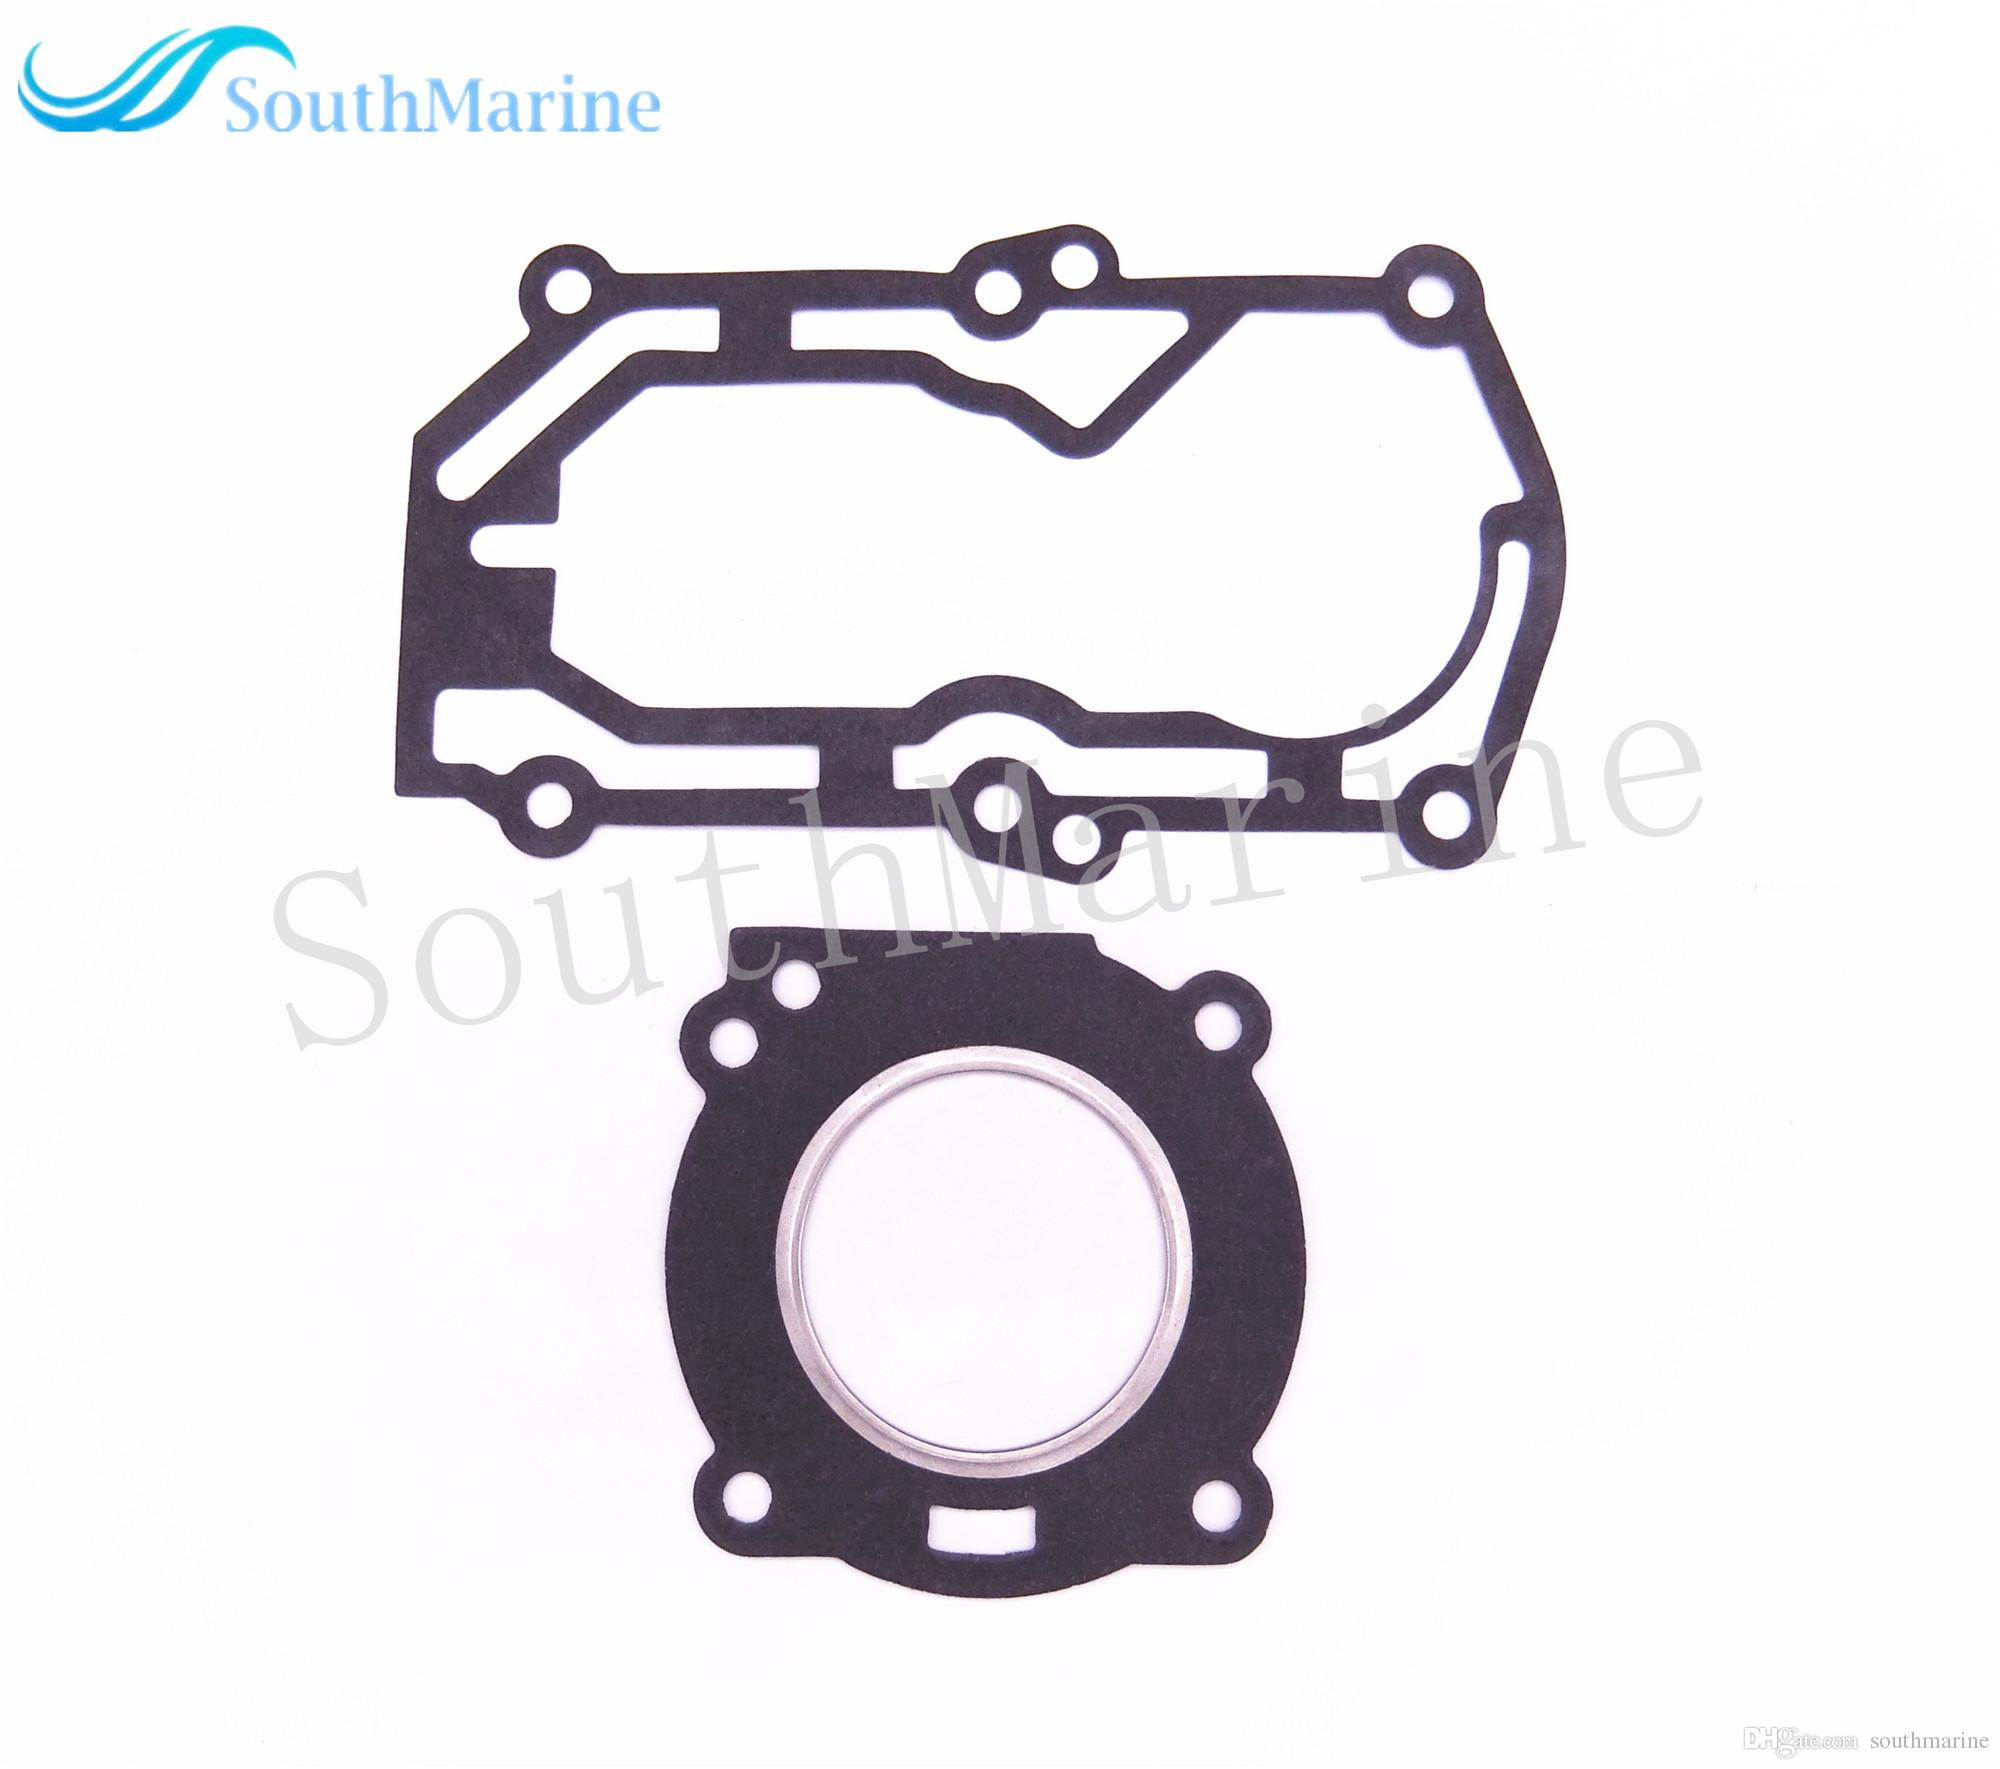 Boat Motor Complete Power Head Seal Gasket Kit for Parsun HDX 2-Stroke T2.5 T3.6 Outboard Engine